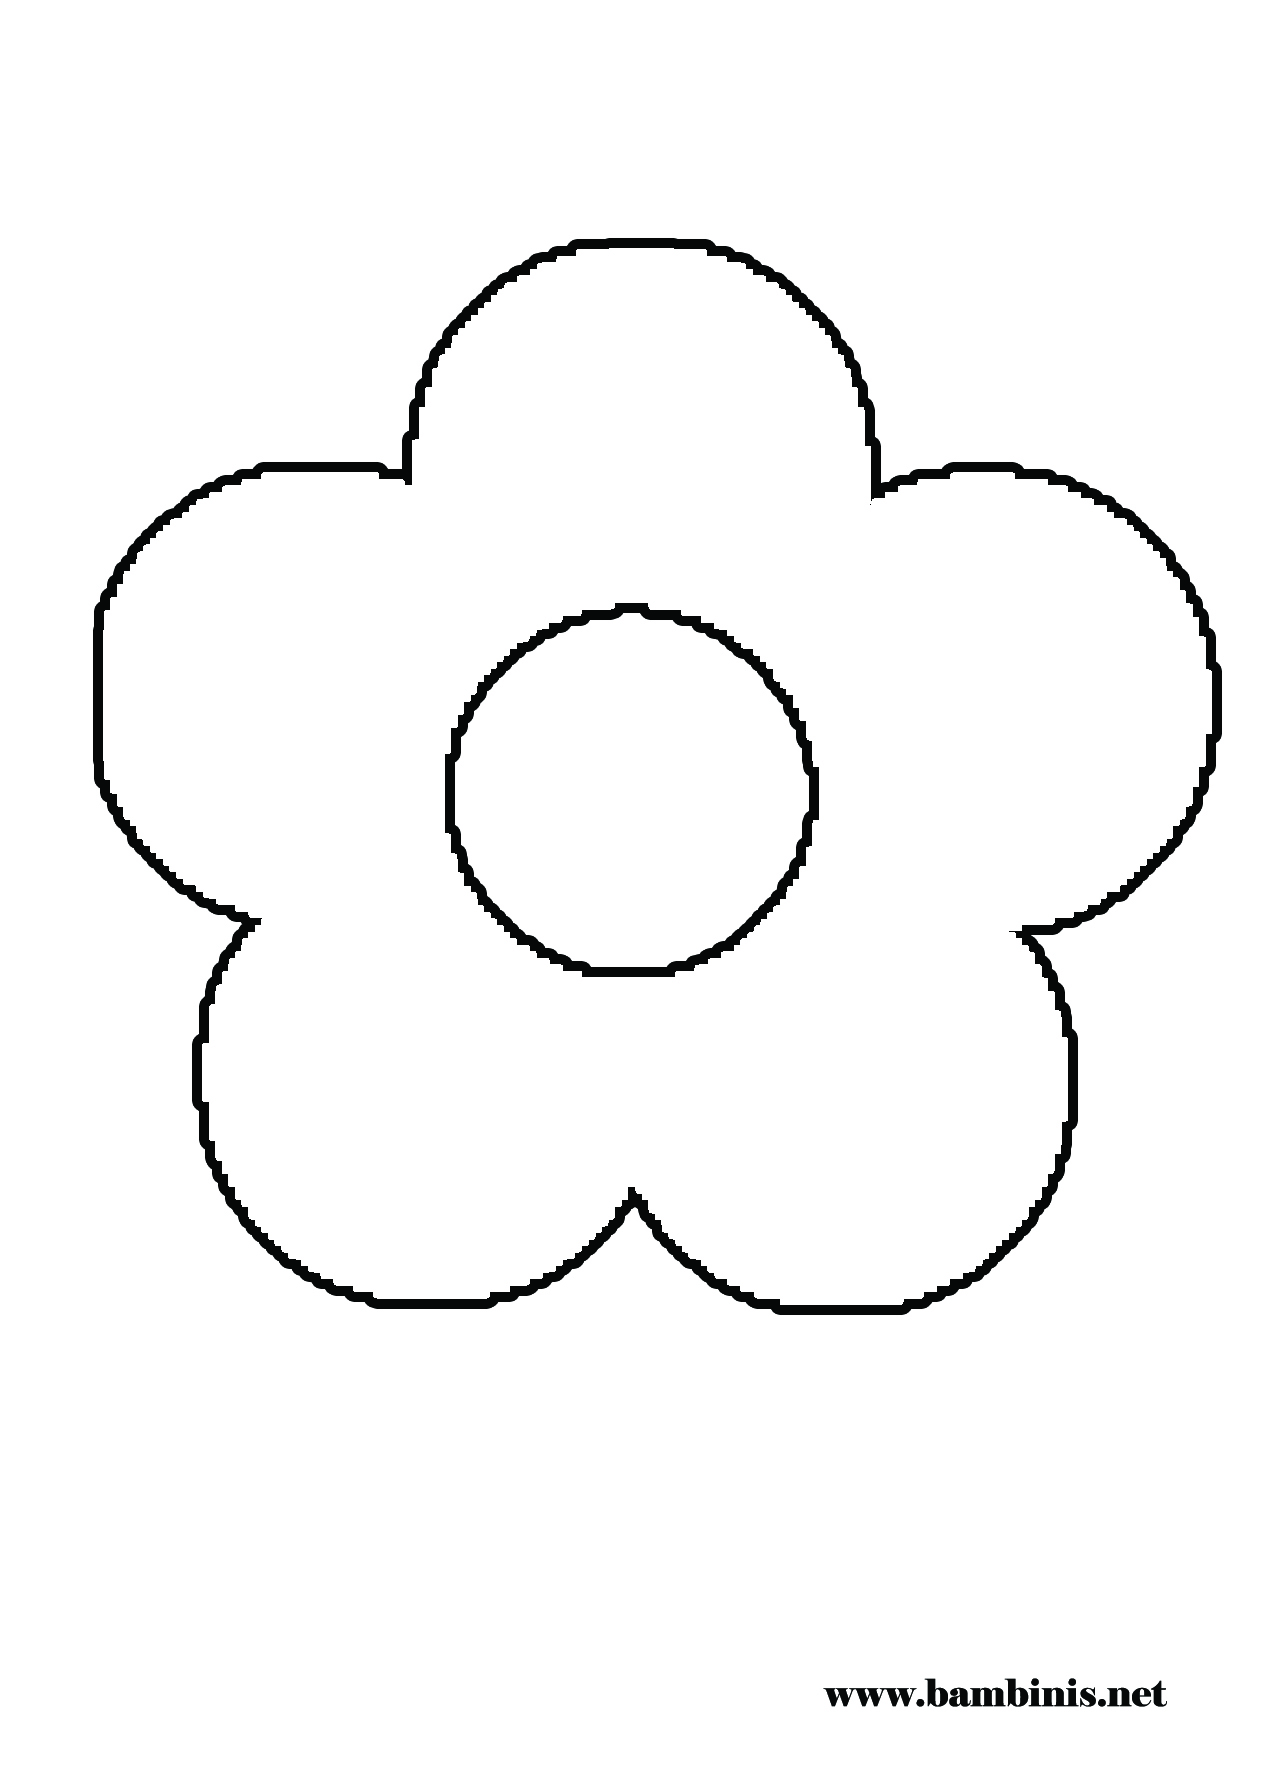 1276x1790 Simple Flower Coloring Pages